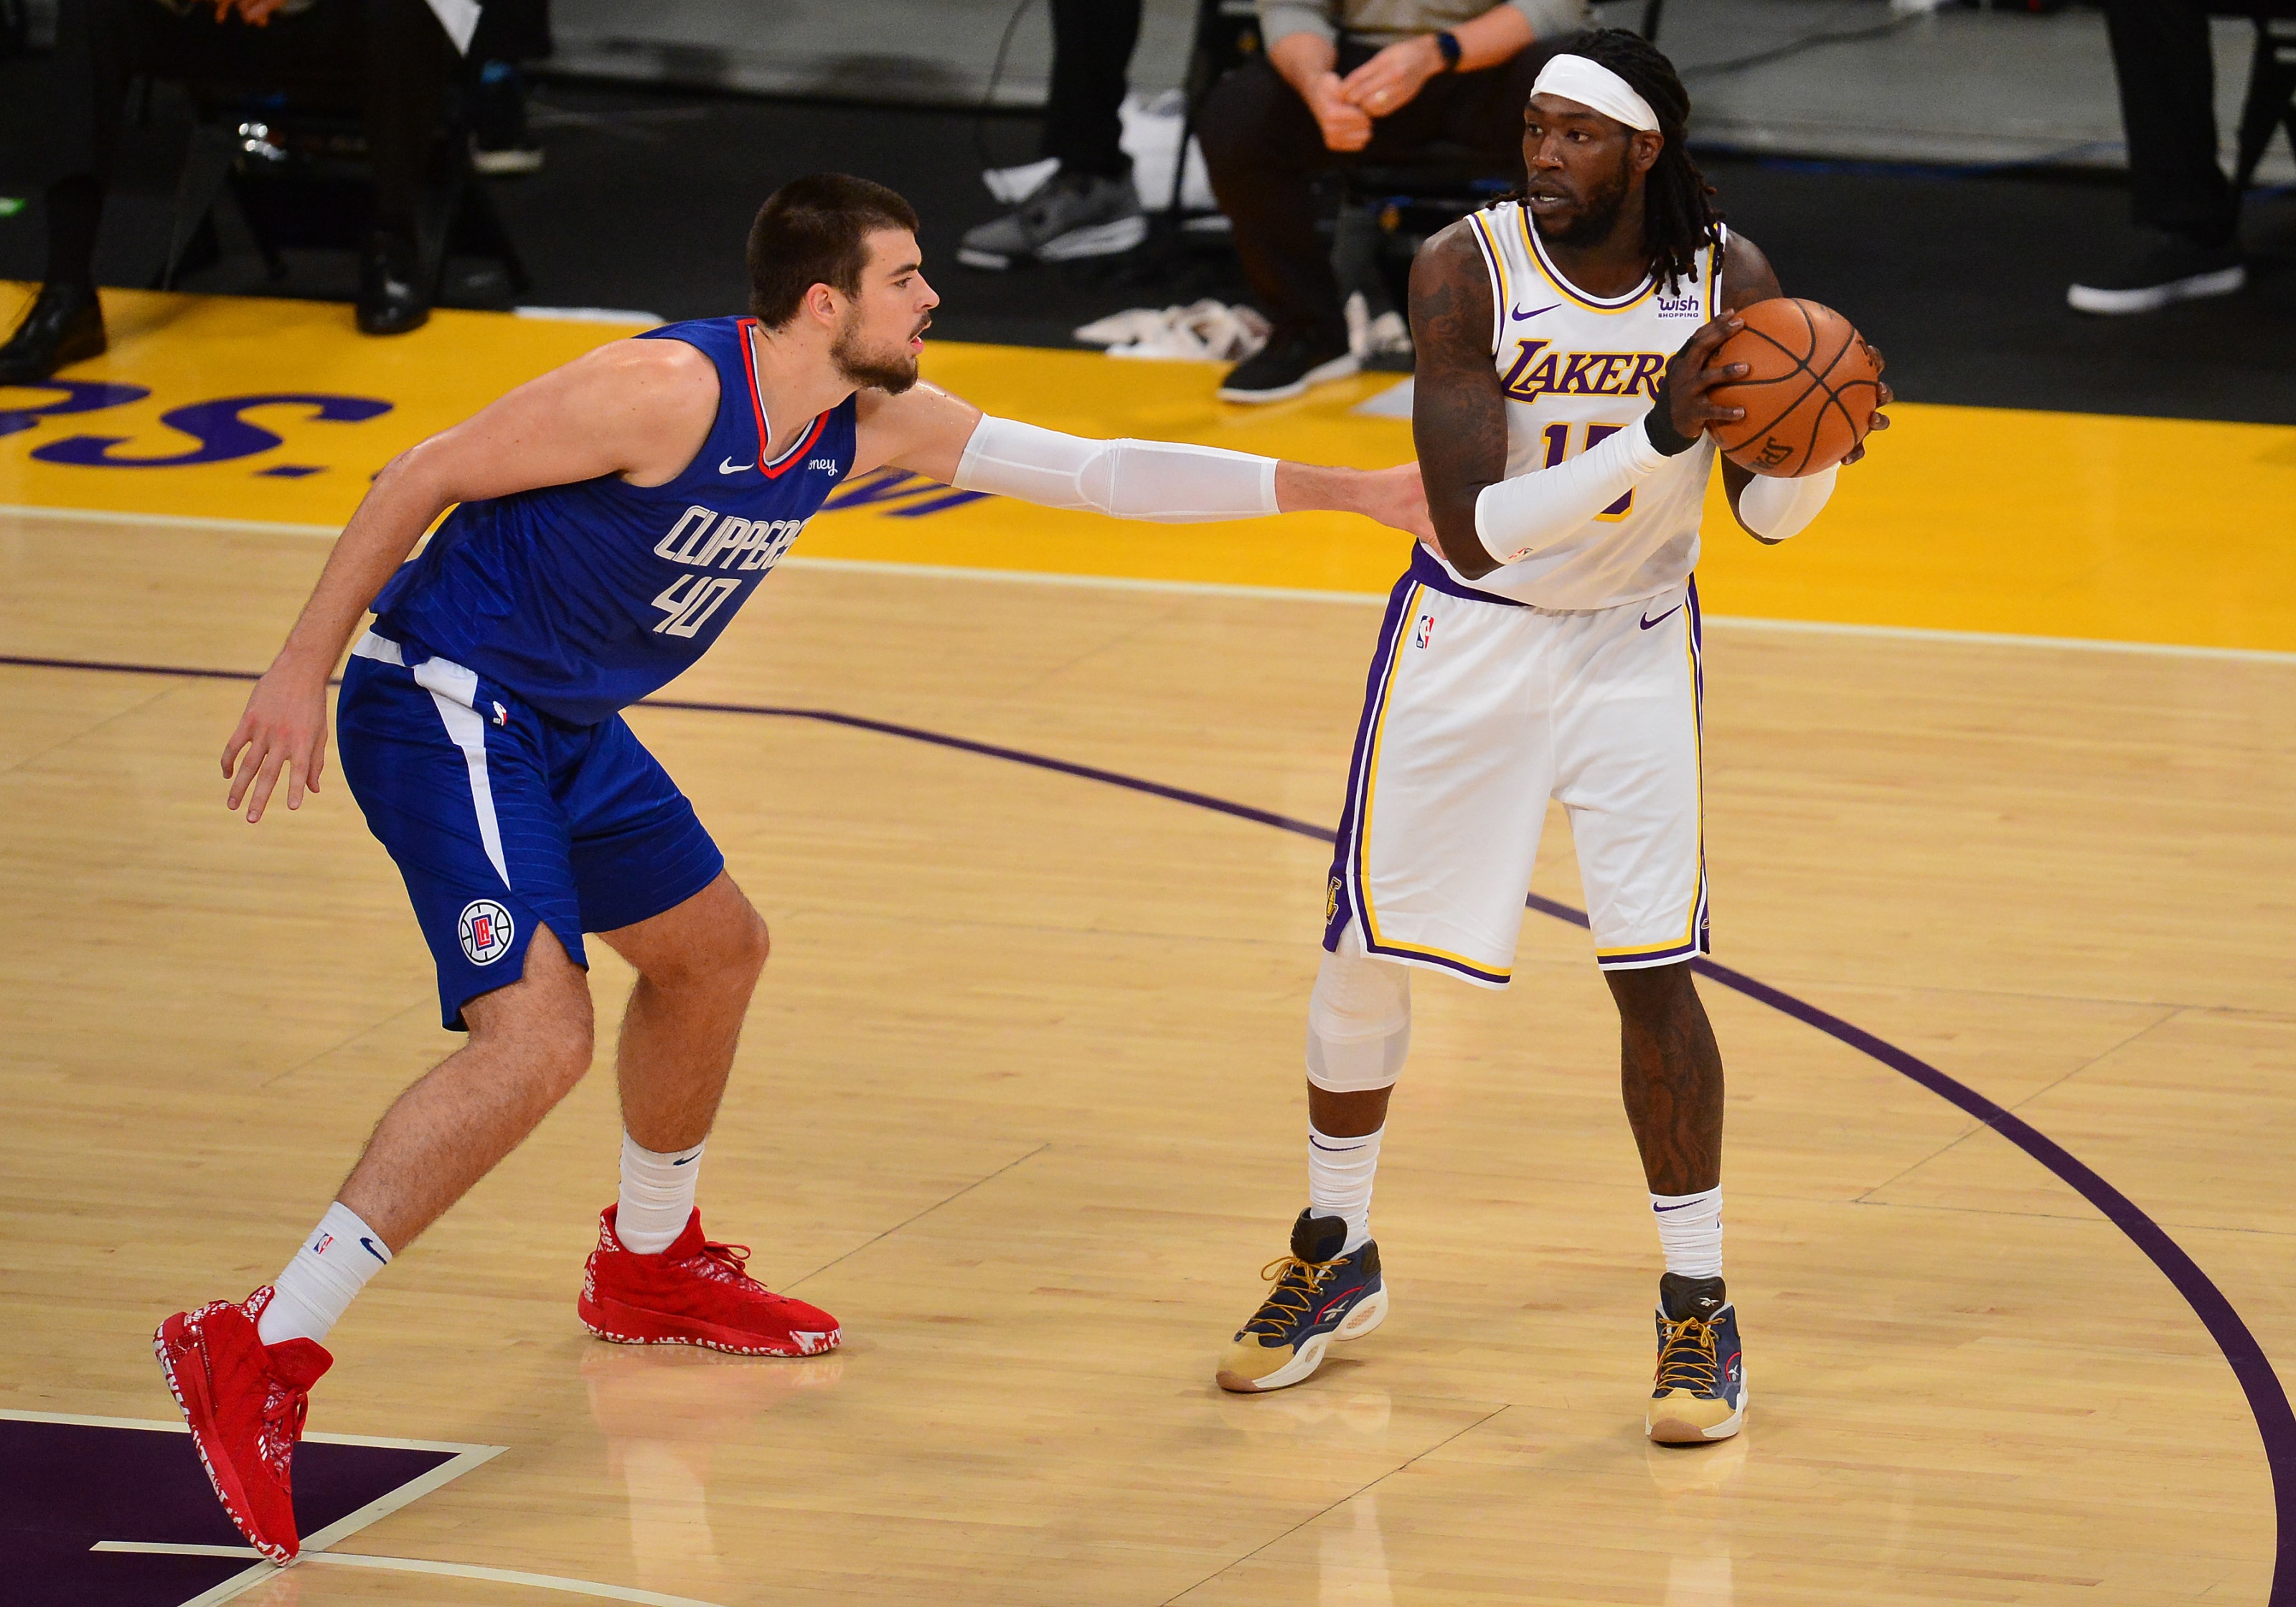 Lakers: Don't overlook Dennis Schröder and Montrezl Harrell in the loss